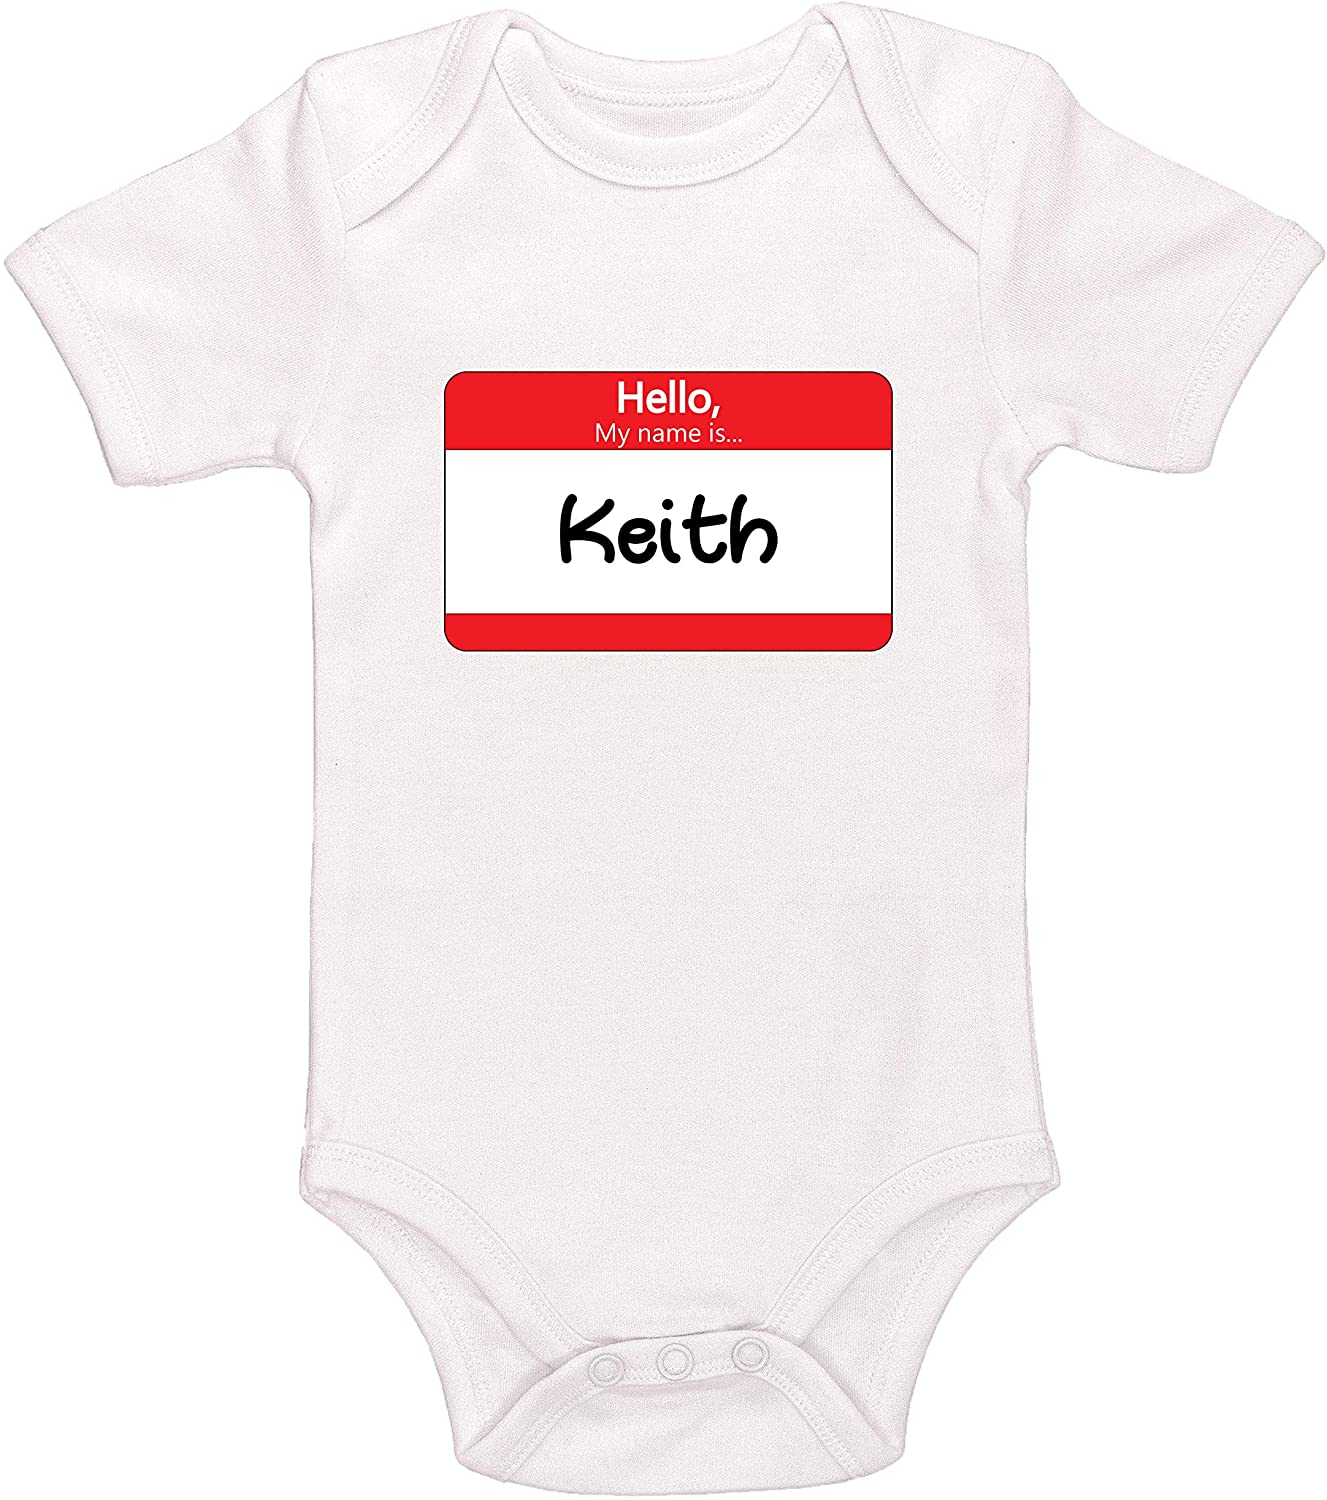 Kinacle Hello My Name is Keith Personalized Baby Bodysuit